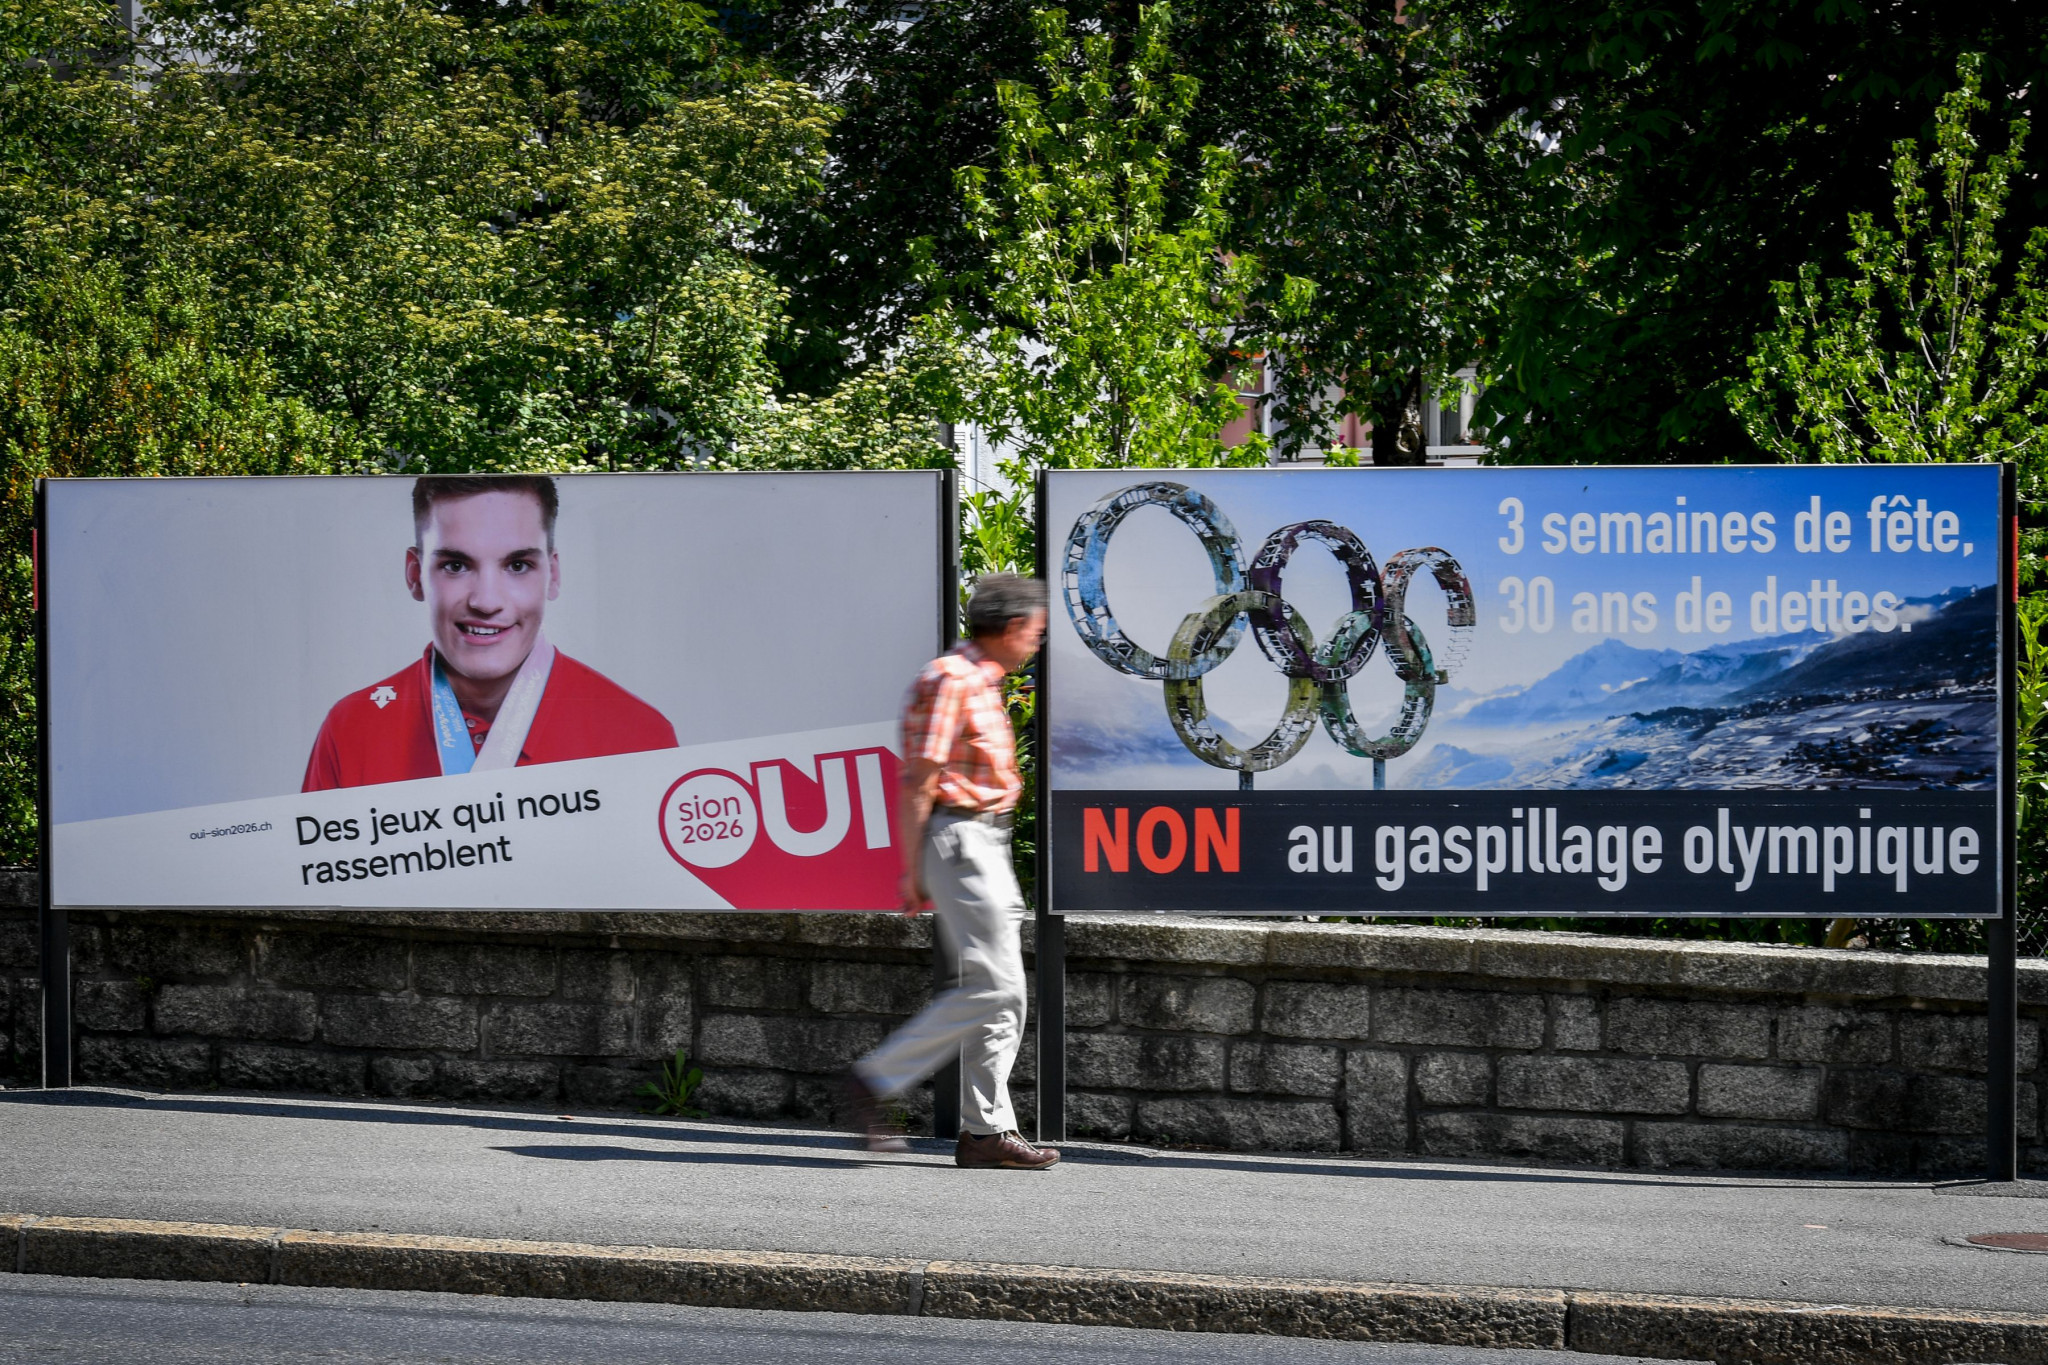 Posters supporting and opposing the Sion 2026 bid placed side by side ©Getty Images